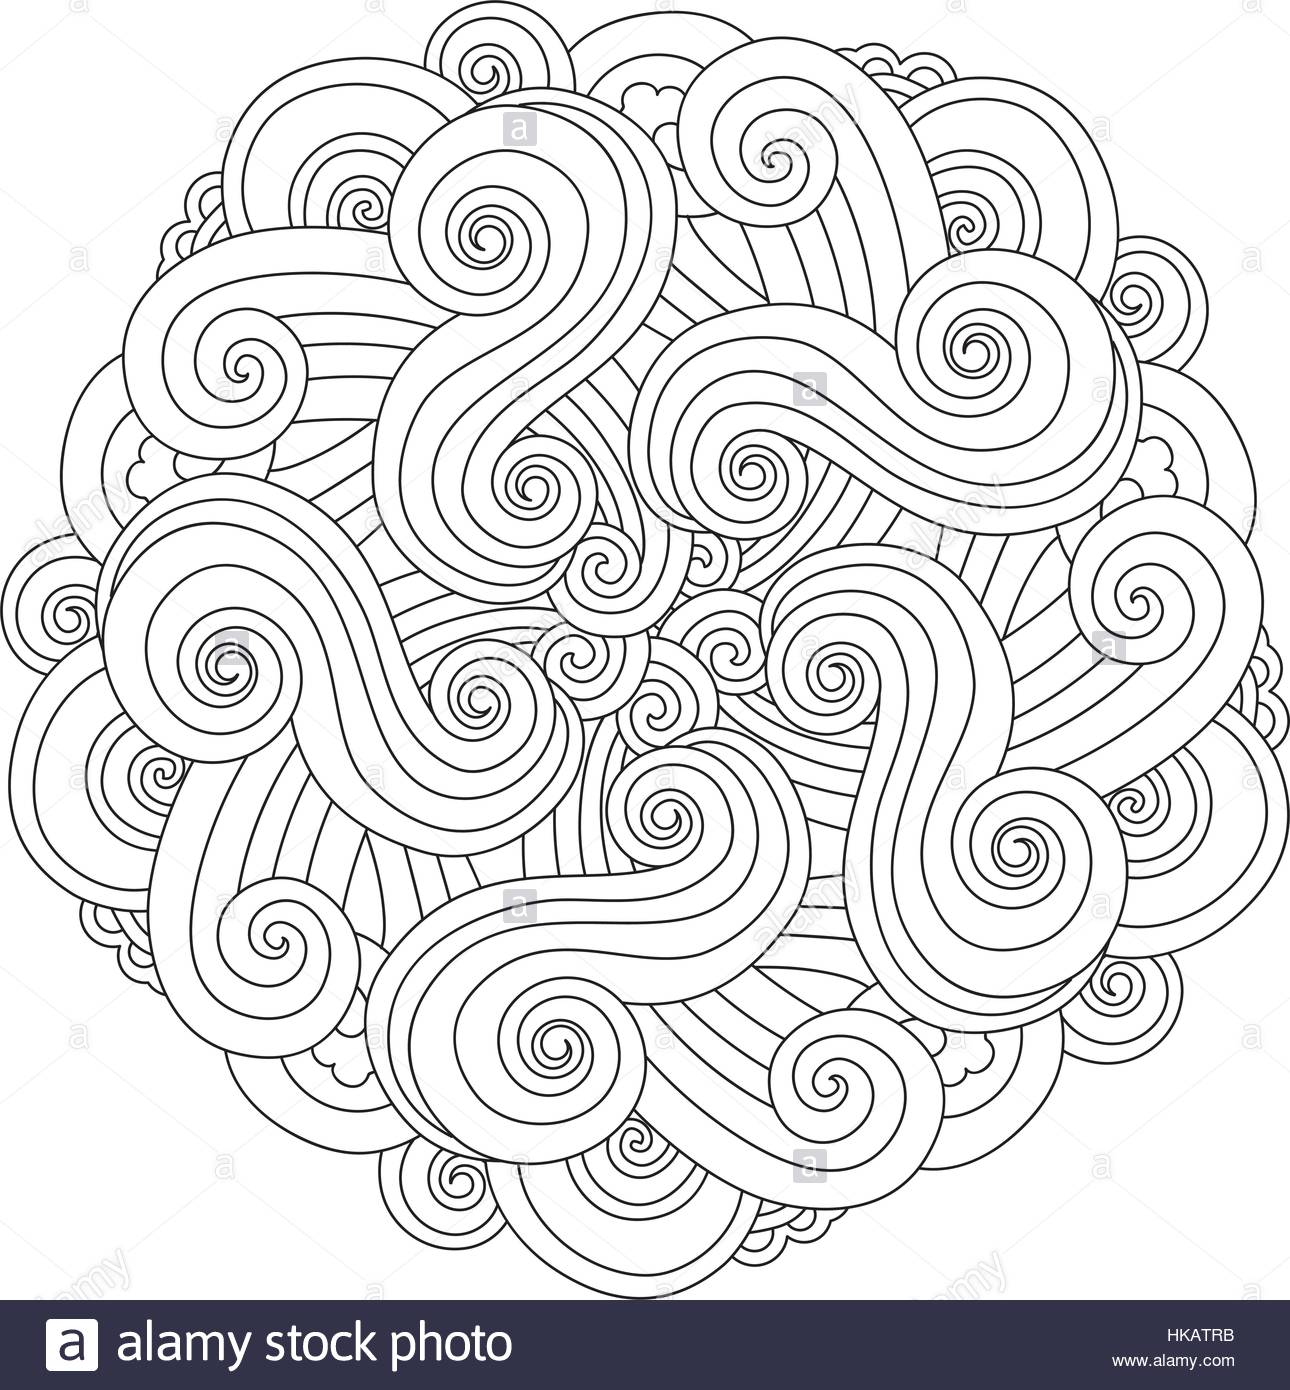 1290x1390 Graphic Mandala With Waves And Curles. Element Of Sea. Zentangle